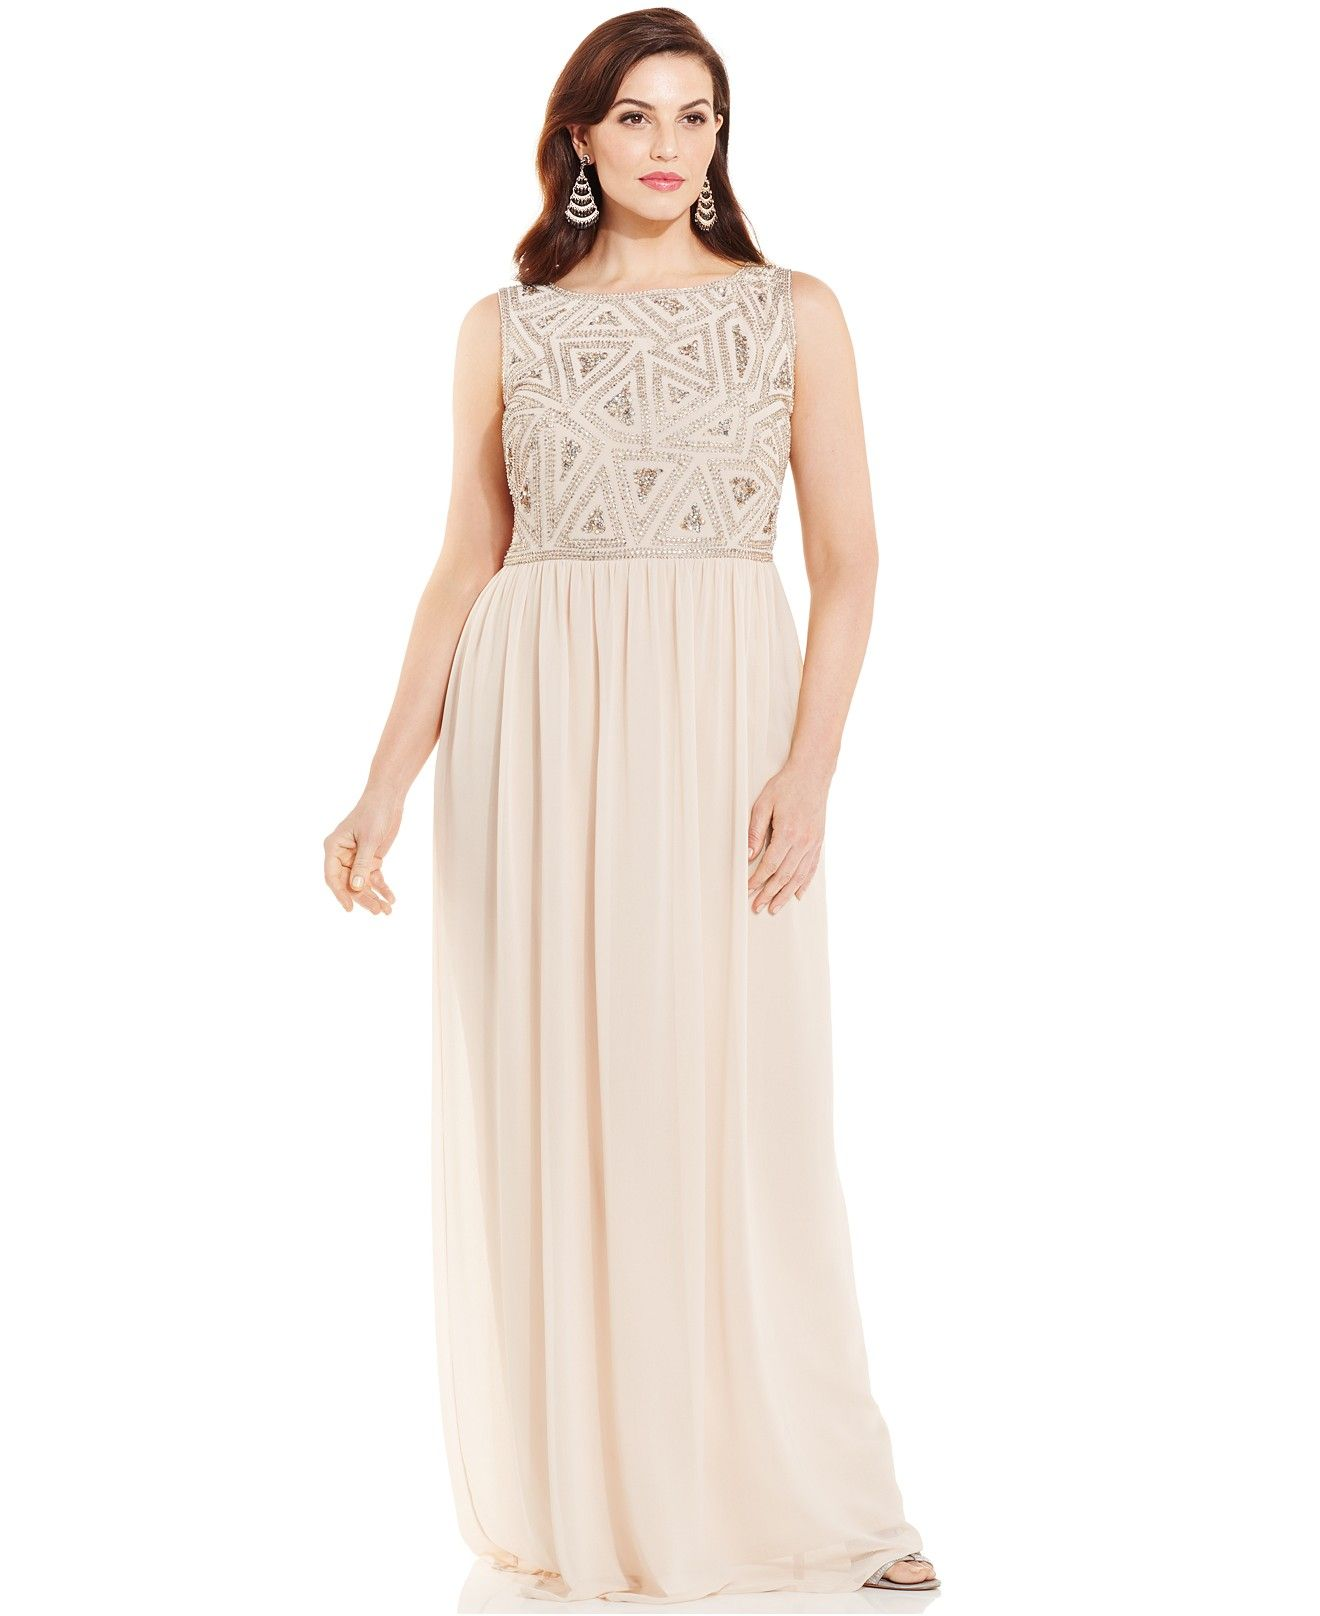 5f579ff1a1a Adrianna Papell Plus Size Embellished-Bodice Gown - Dresses - Women -  Macy s Plus Size